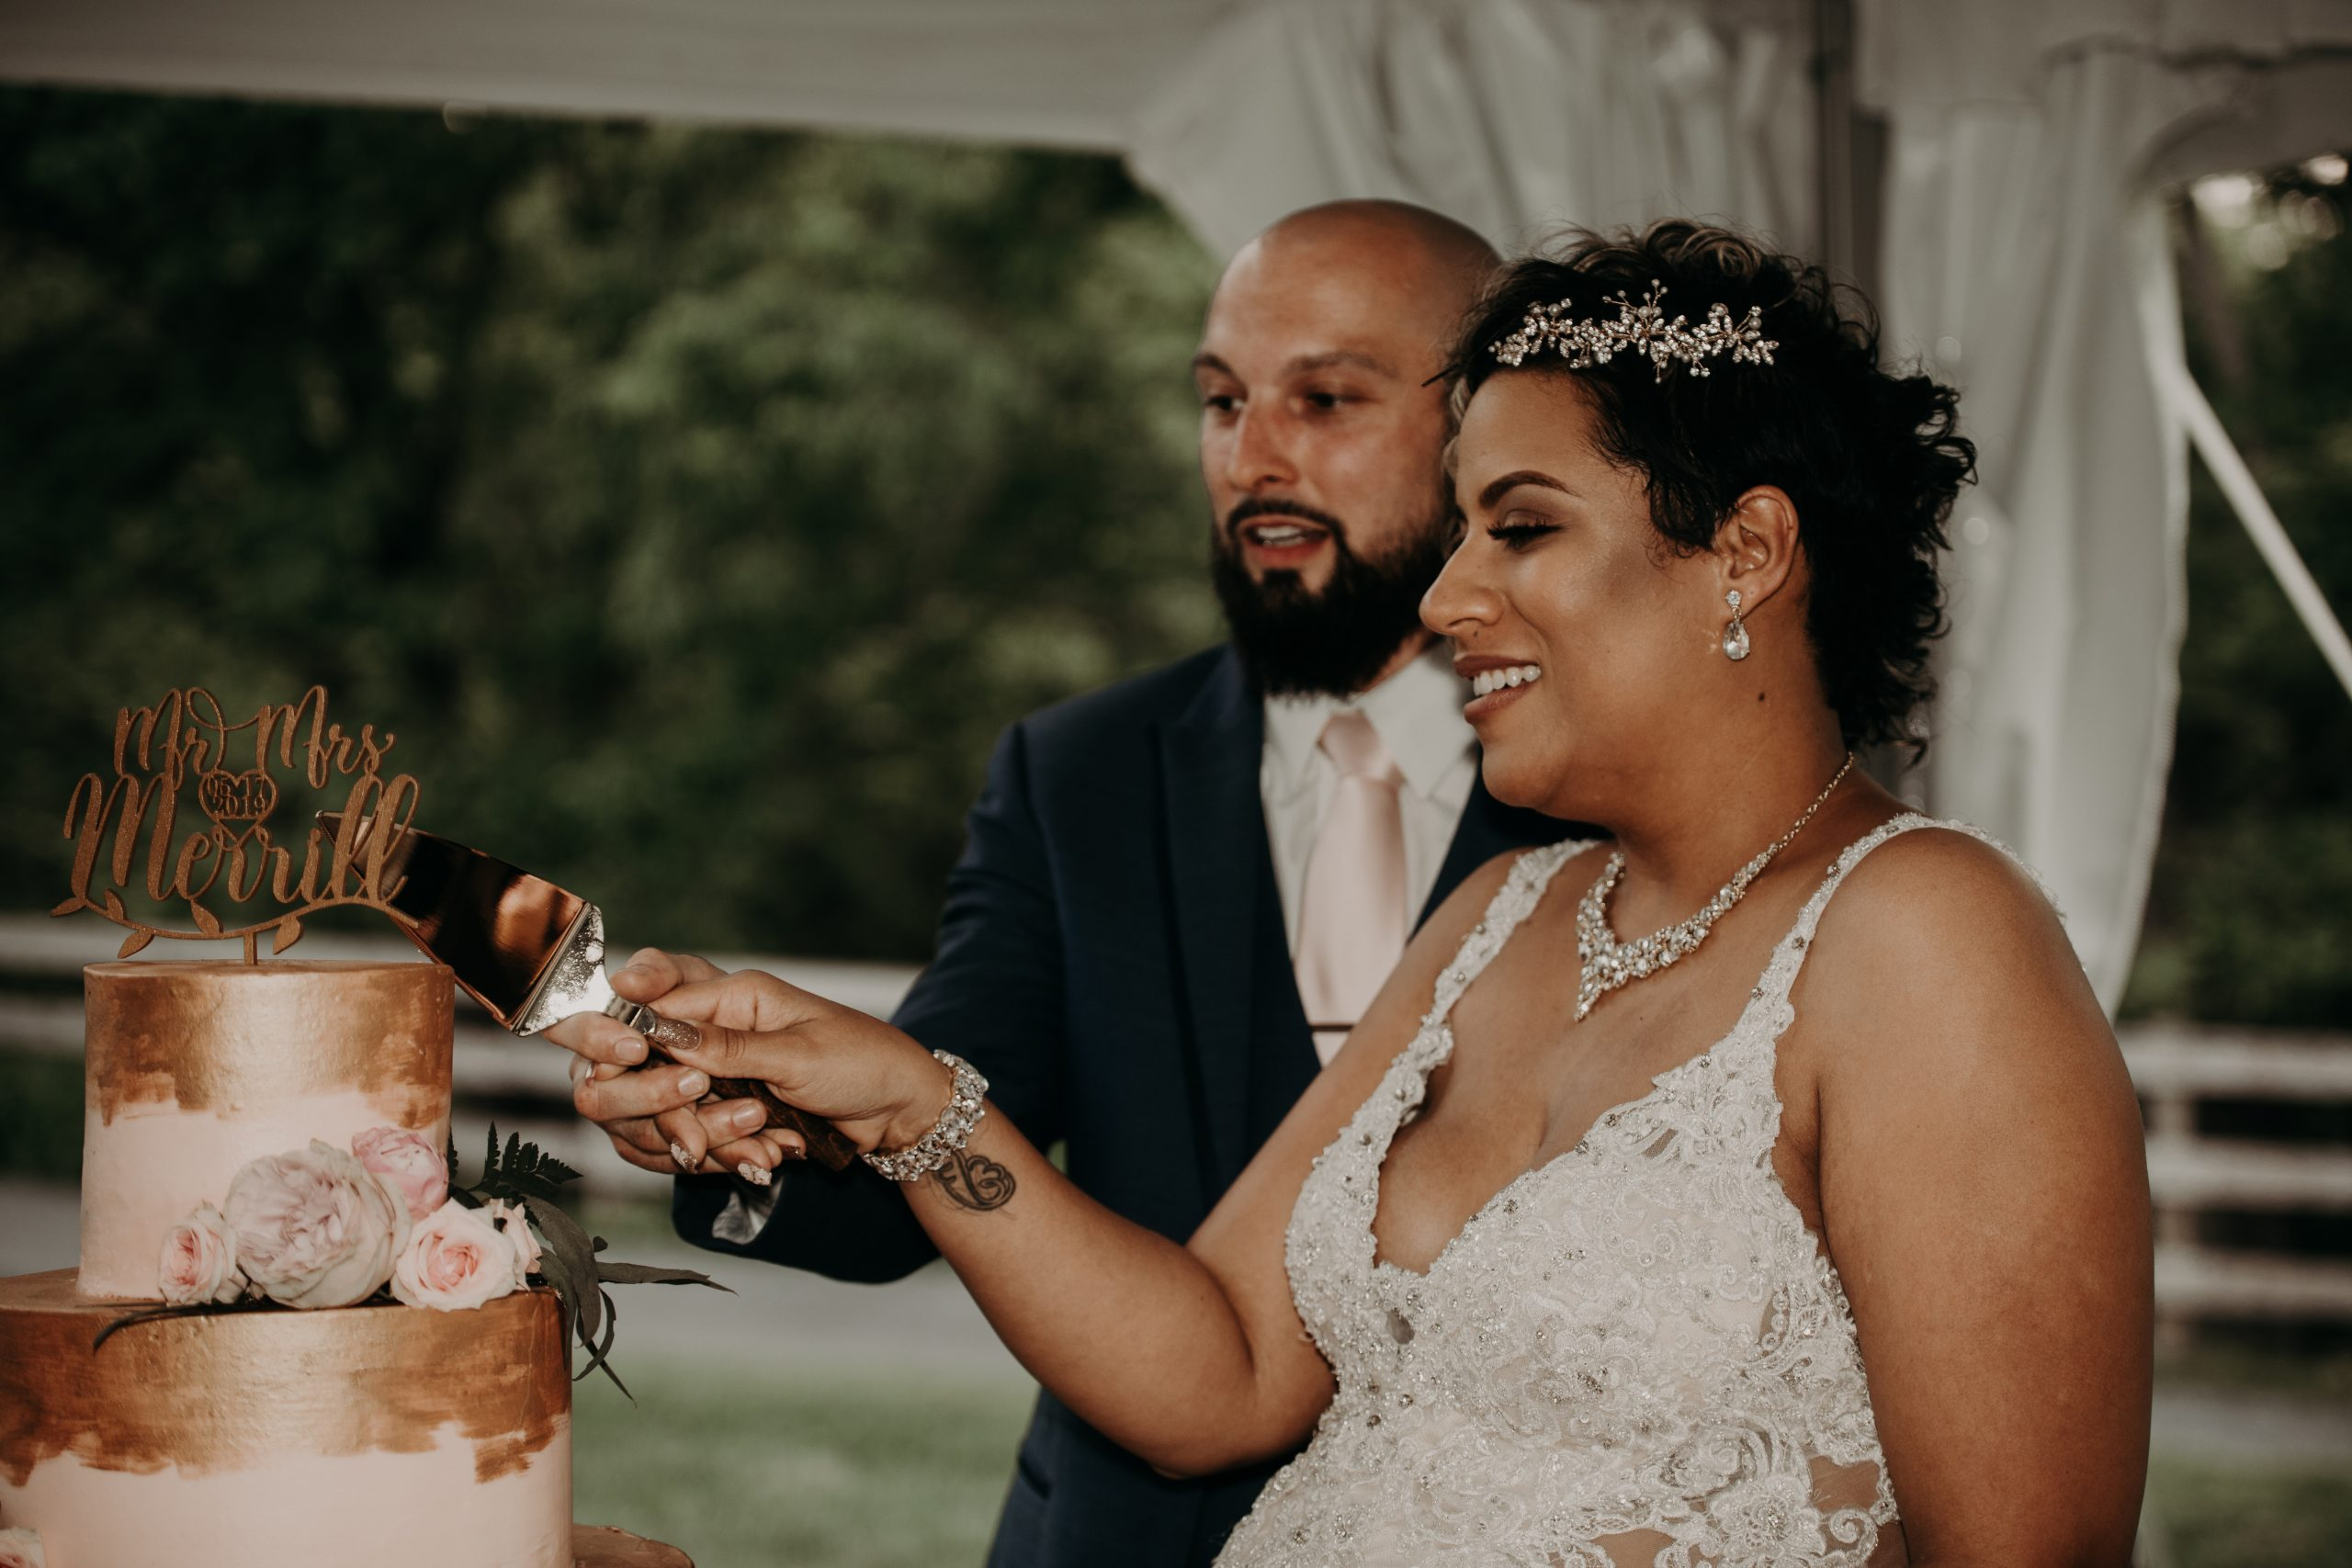 Cutting into their blush pink cake with gold paint accents. Christine and Richard wed on the Chestnut Hill Villa grounds on May of 2019. This organic ethereal styled wedding was captured by Garnet Dahlia Photography and featured on Dream Weddings.